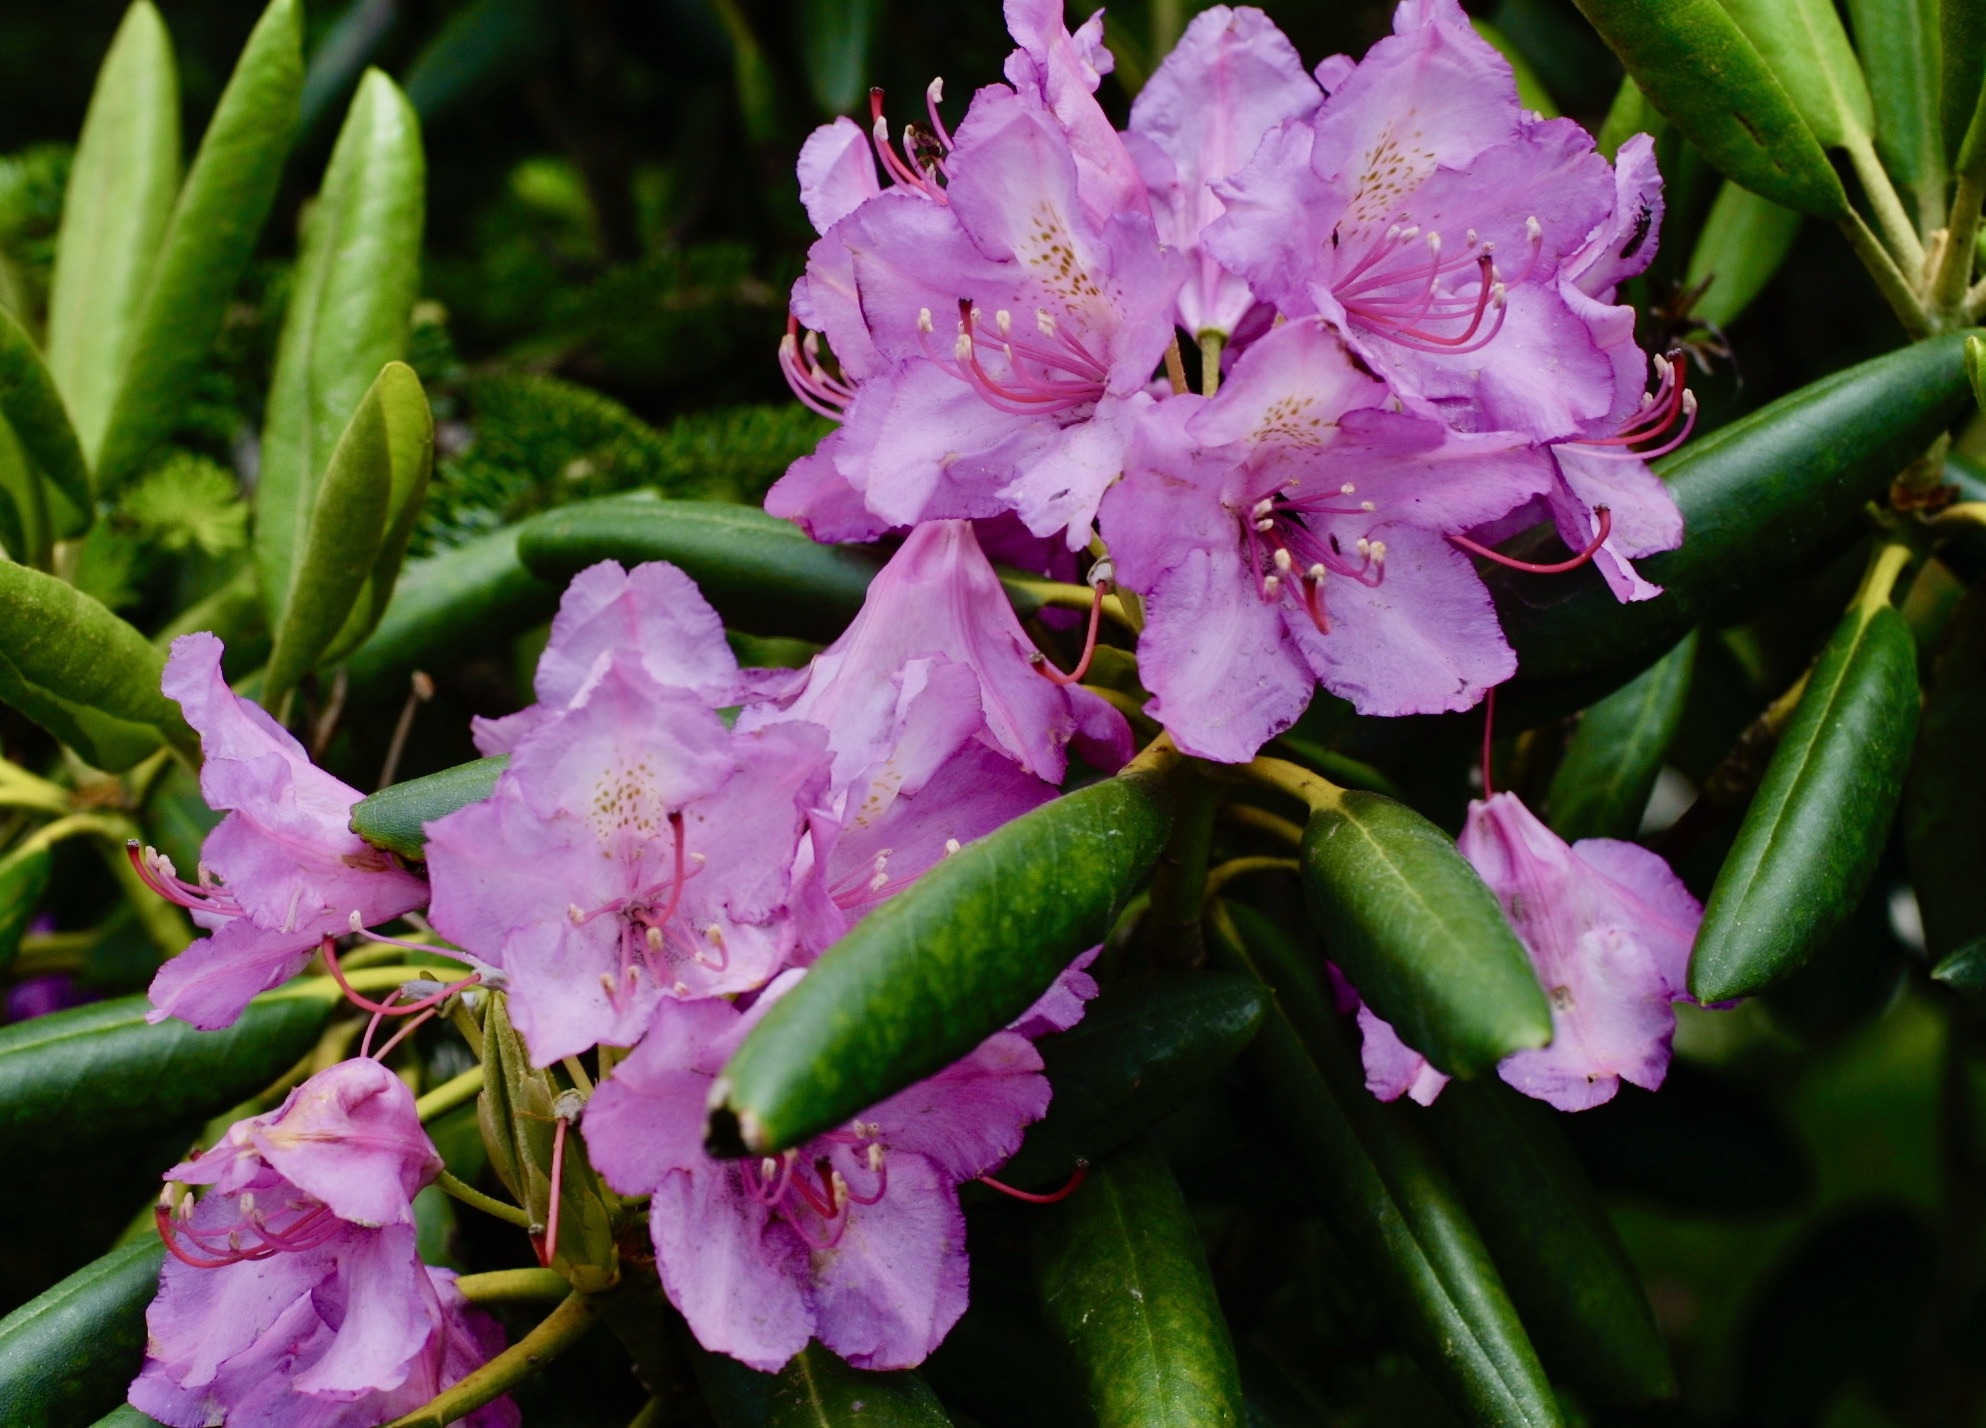 The Scientific Name is Rhododendron catawbiense. You will likely hear them called Catawba Rhododendron, Mountain Rosebay, Catawba Rosebay, Purple Rhododendron, Purple Laurel, Rosebay Laurel, Pink Laurel. This picture shows the Leaves shorter than those of Rhododendron maximum, and somewhat whitish beneath.  of Rhododendron catawbiense